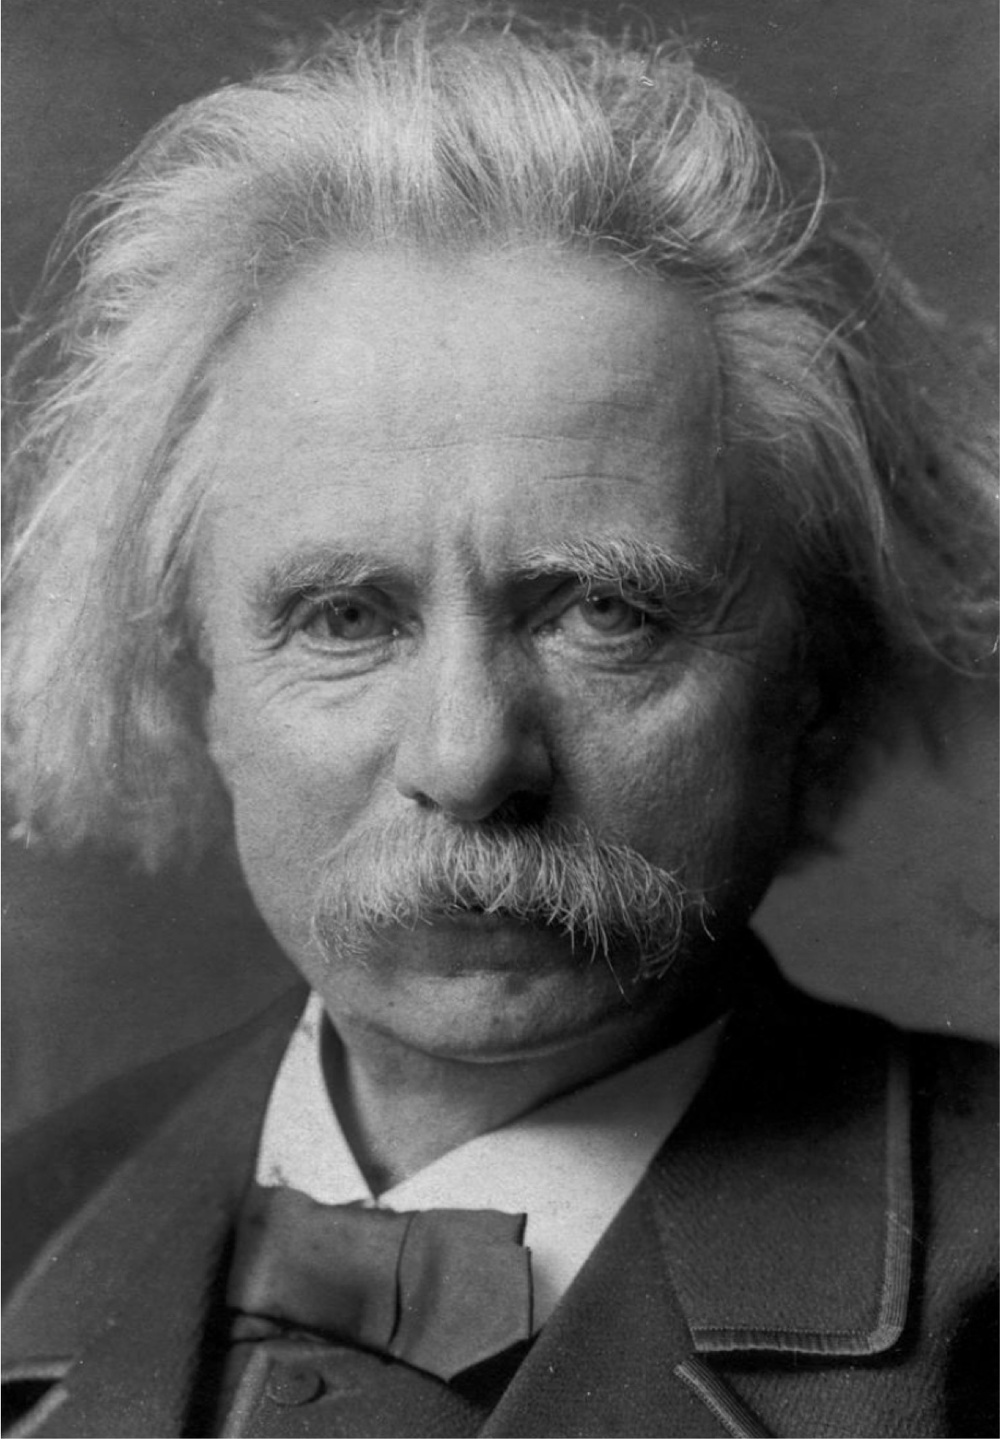 Edward Grieg (1843-1907), the Norwegian composer who's nationalistic music made him a popular hero of his home country.  Though best known for his immensely popular work, In the Hall of the Mountain King, he actually did not like the piece.  Note the striking resemblance to Einstein in this photo.